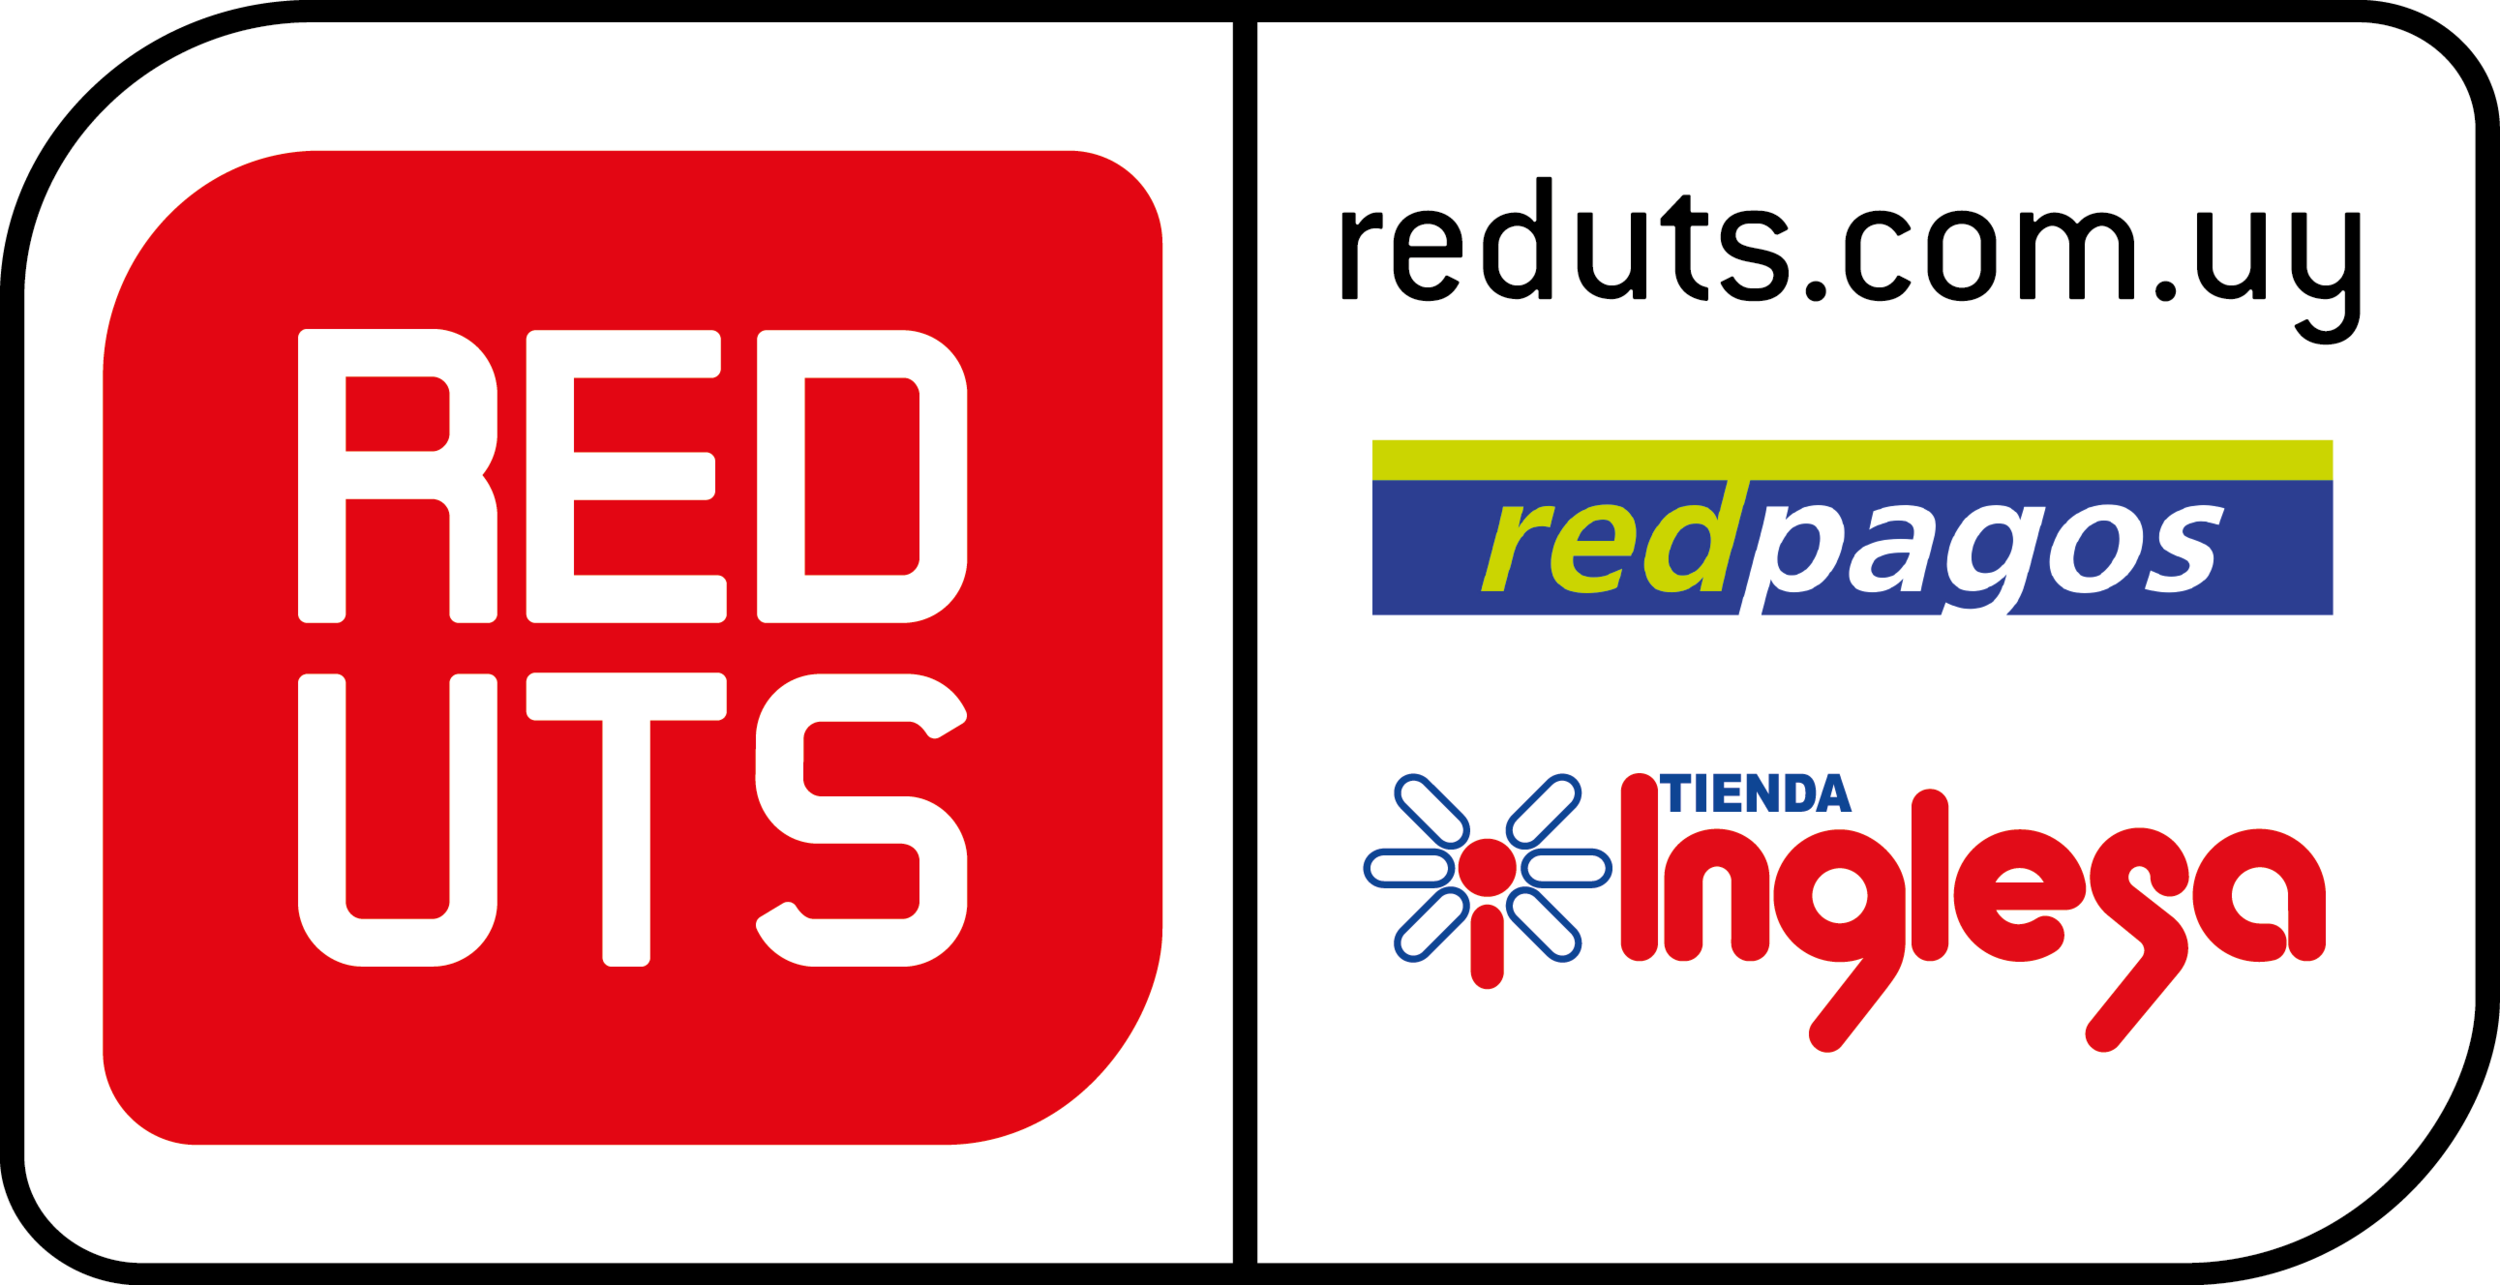 Sello RED UTS 2016 -01.png